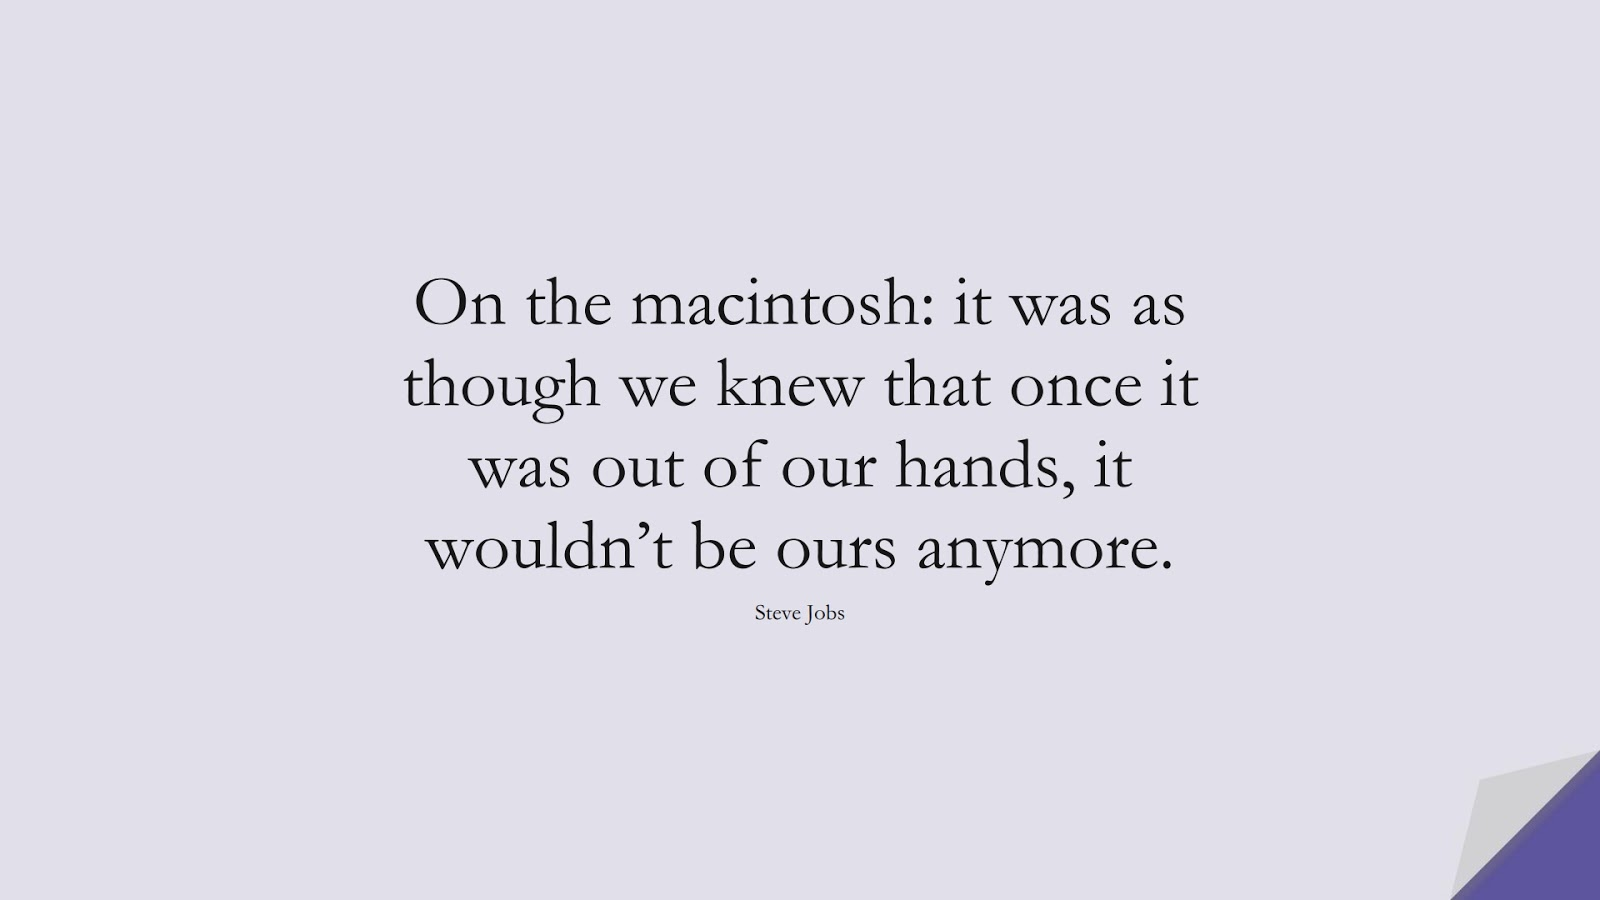 On the macintosh: it was as though we knew that once it was out of our hands, it wouldn't be ours anymore. (Steve Jobs);  #SteveJobsQuotes